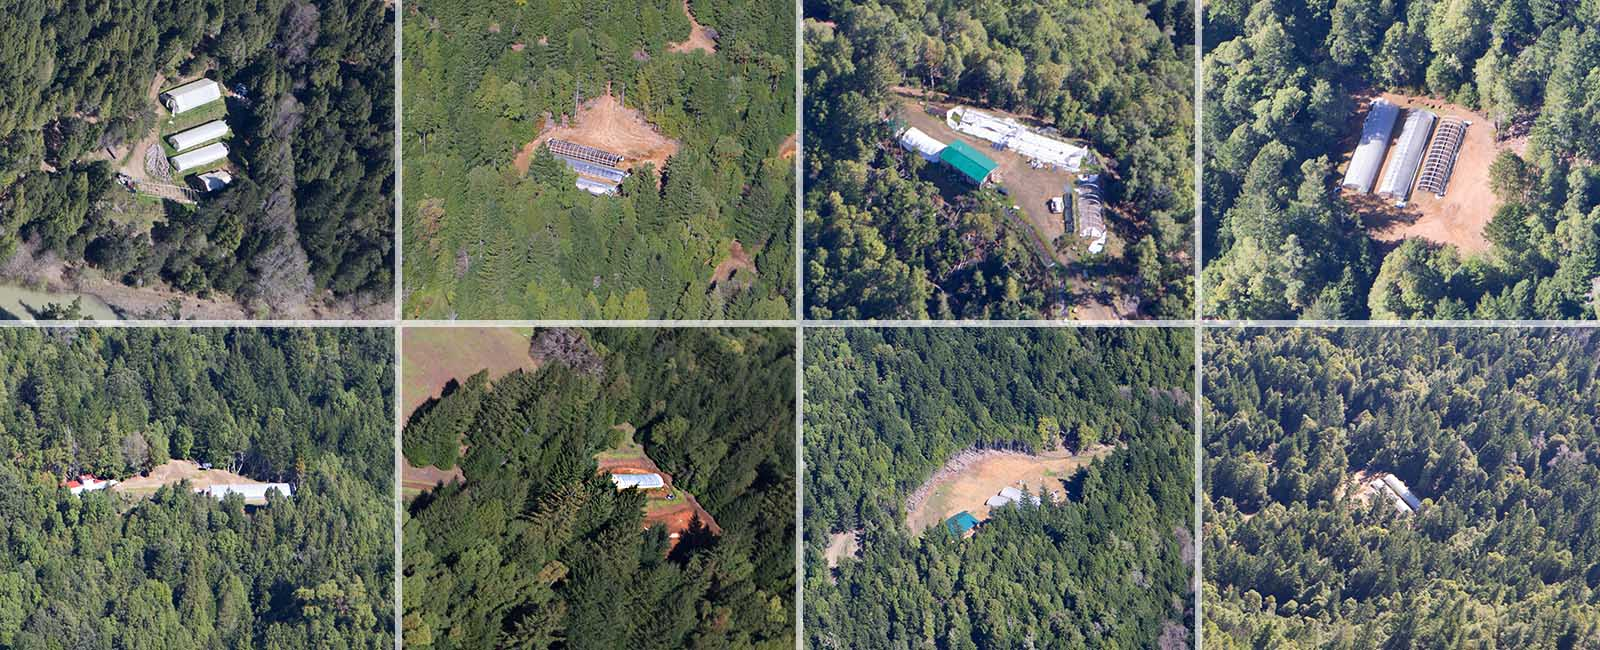 Seen from the air are eight marijuana growing operations hacked from the redwood forests of Humboldt County. (Photos: Mary Grace McKernan)